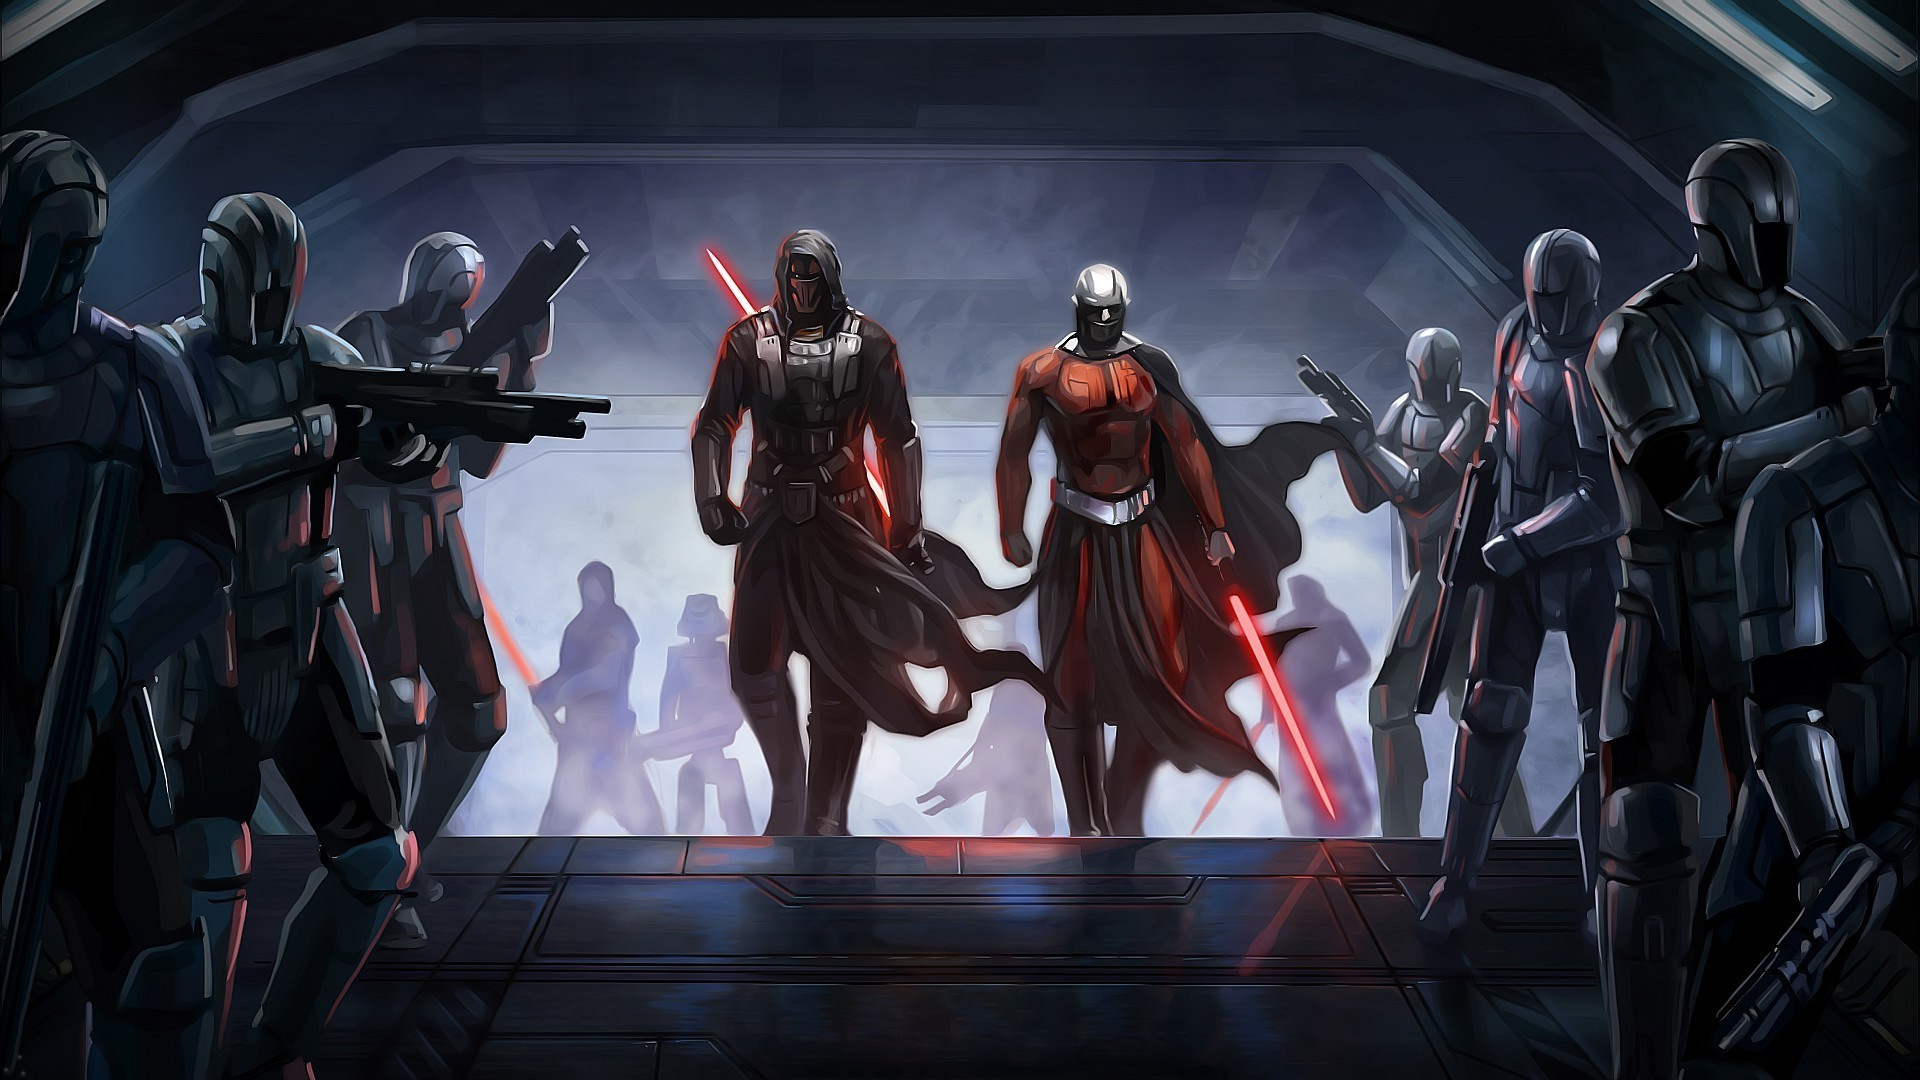 Star Wars Wallpapers | The Art Mad Wallpapers